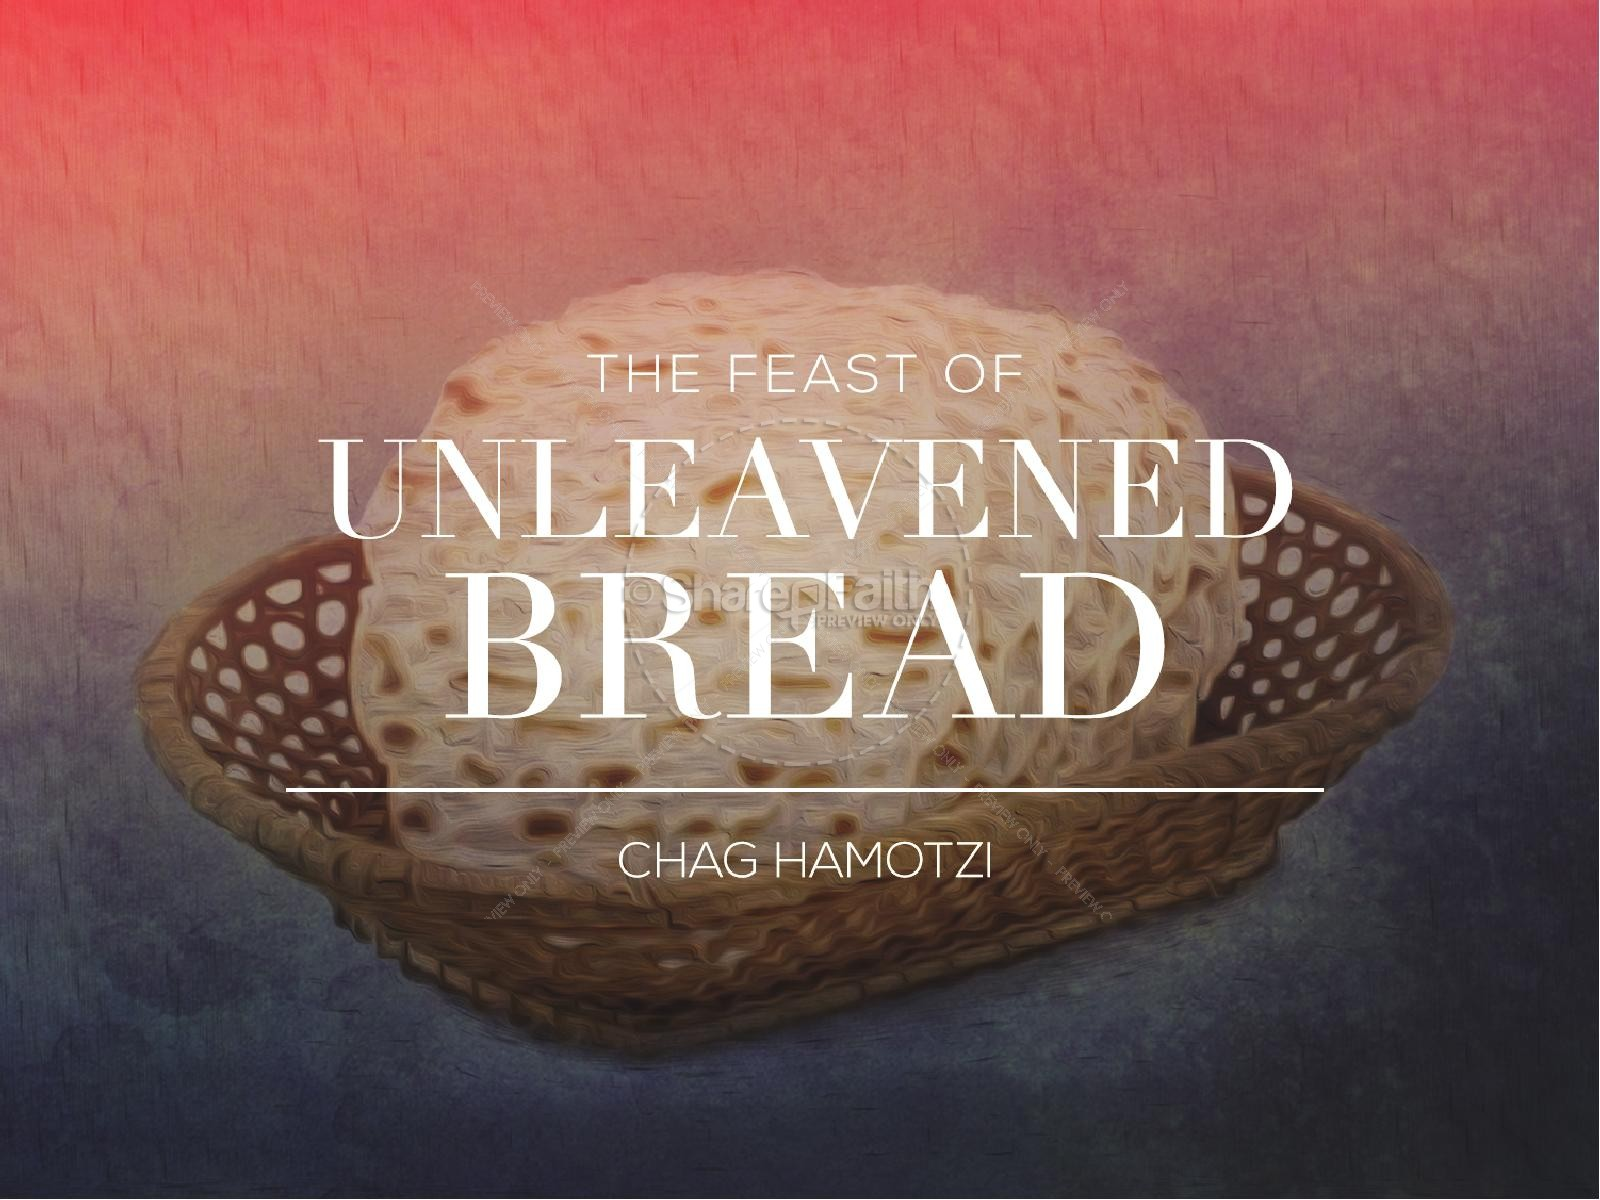 unleavened bread of jewish culture Unleavened bread news innovation, adaptation, modificationthese are the hallmarks of jewish culture, writes marcy goldman in a new book.